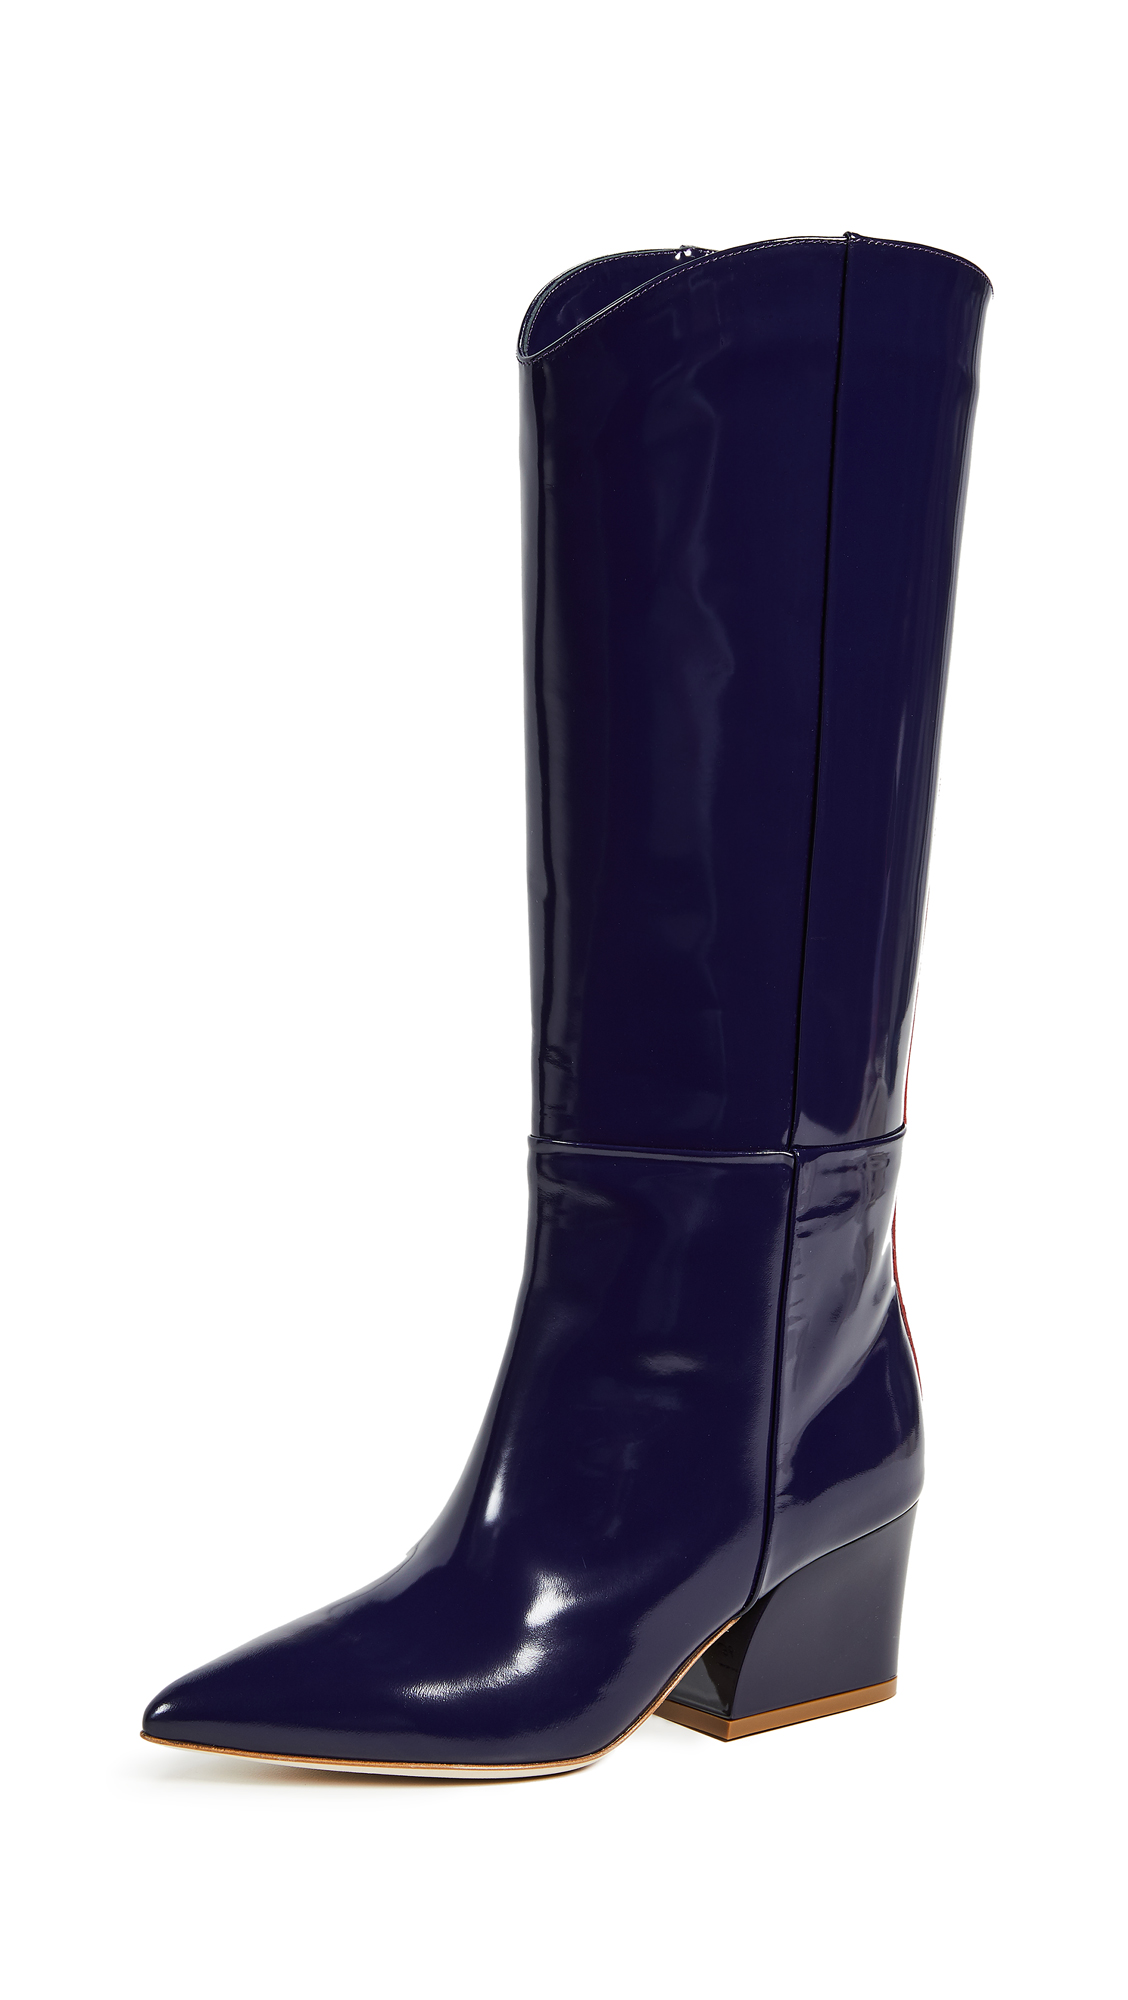 Tibi Logan Boots - Violet/Red Multi